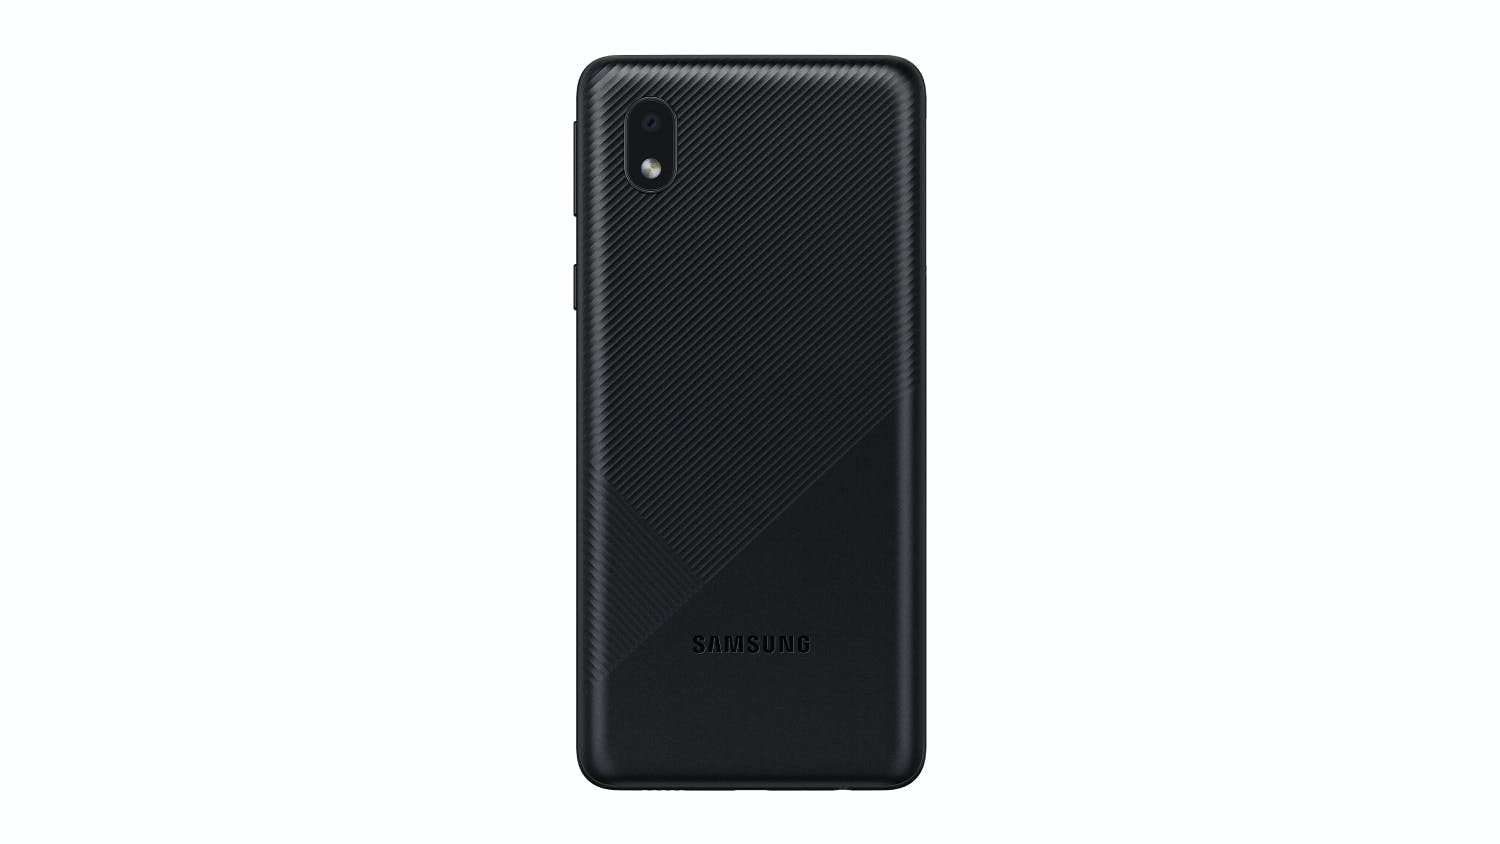 Samsung Galaxy A01 Core Smartphone - Black